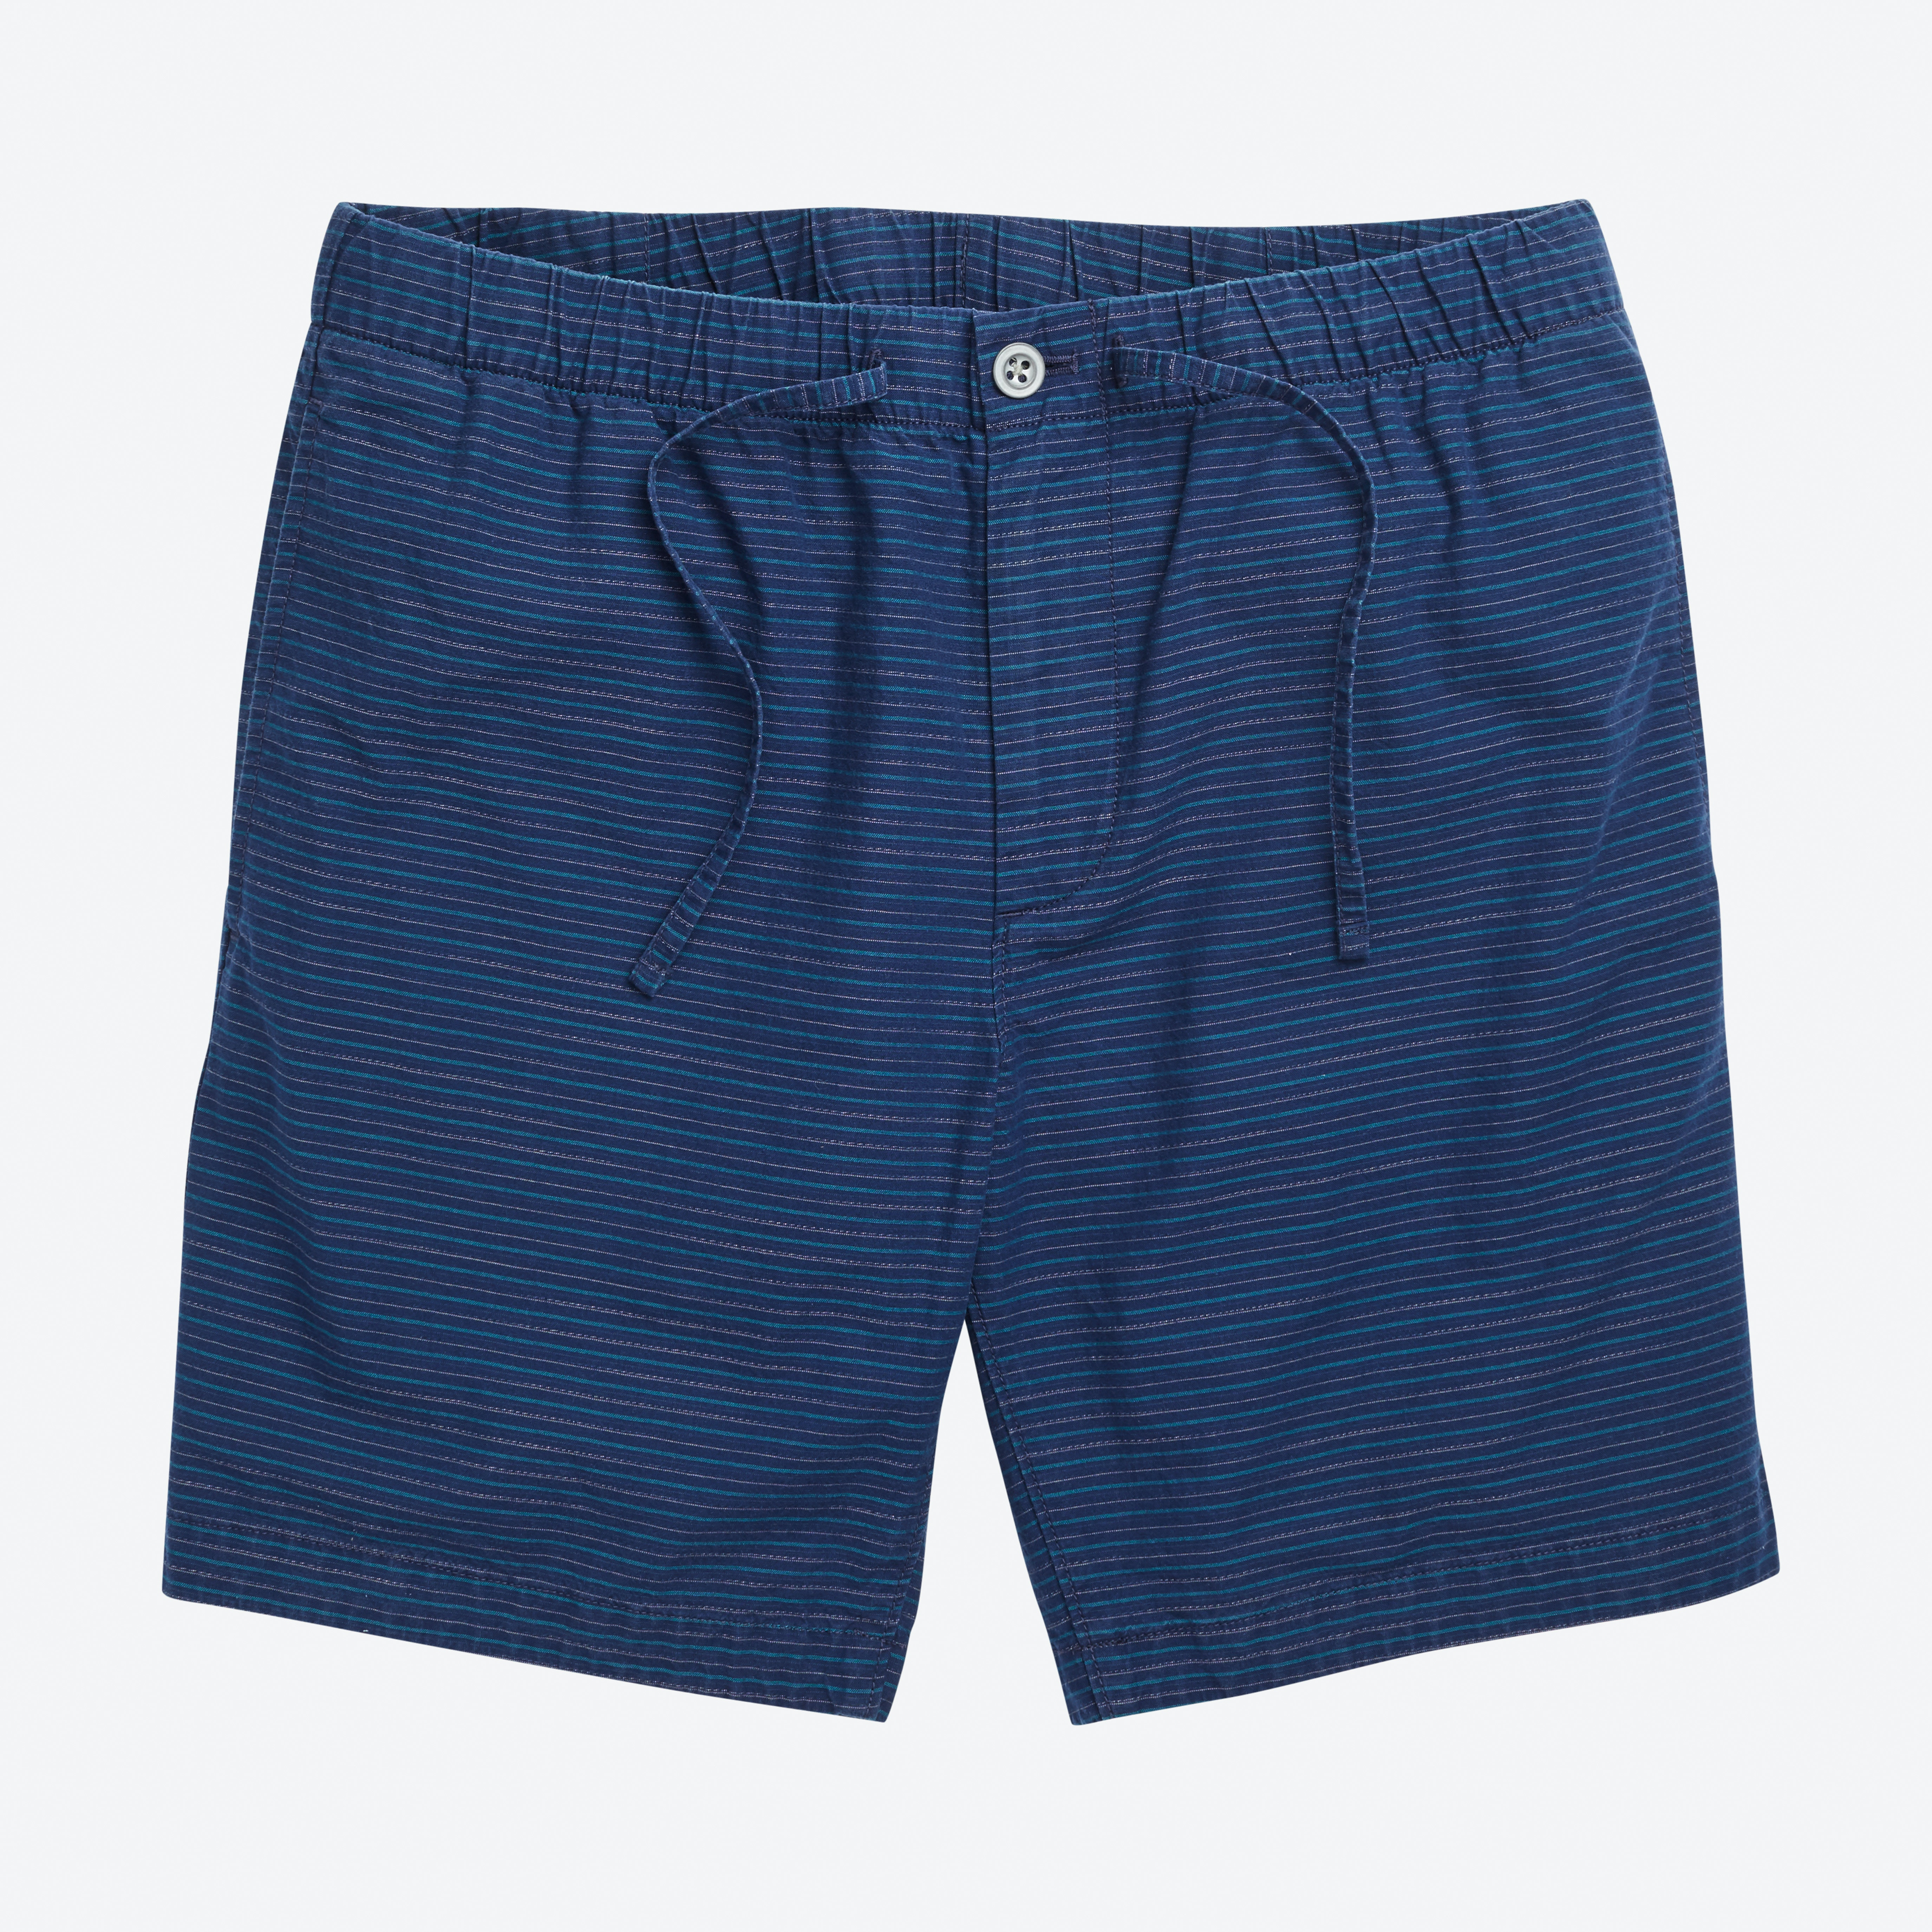 The Beach Short